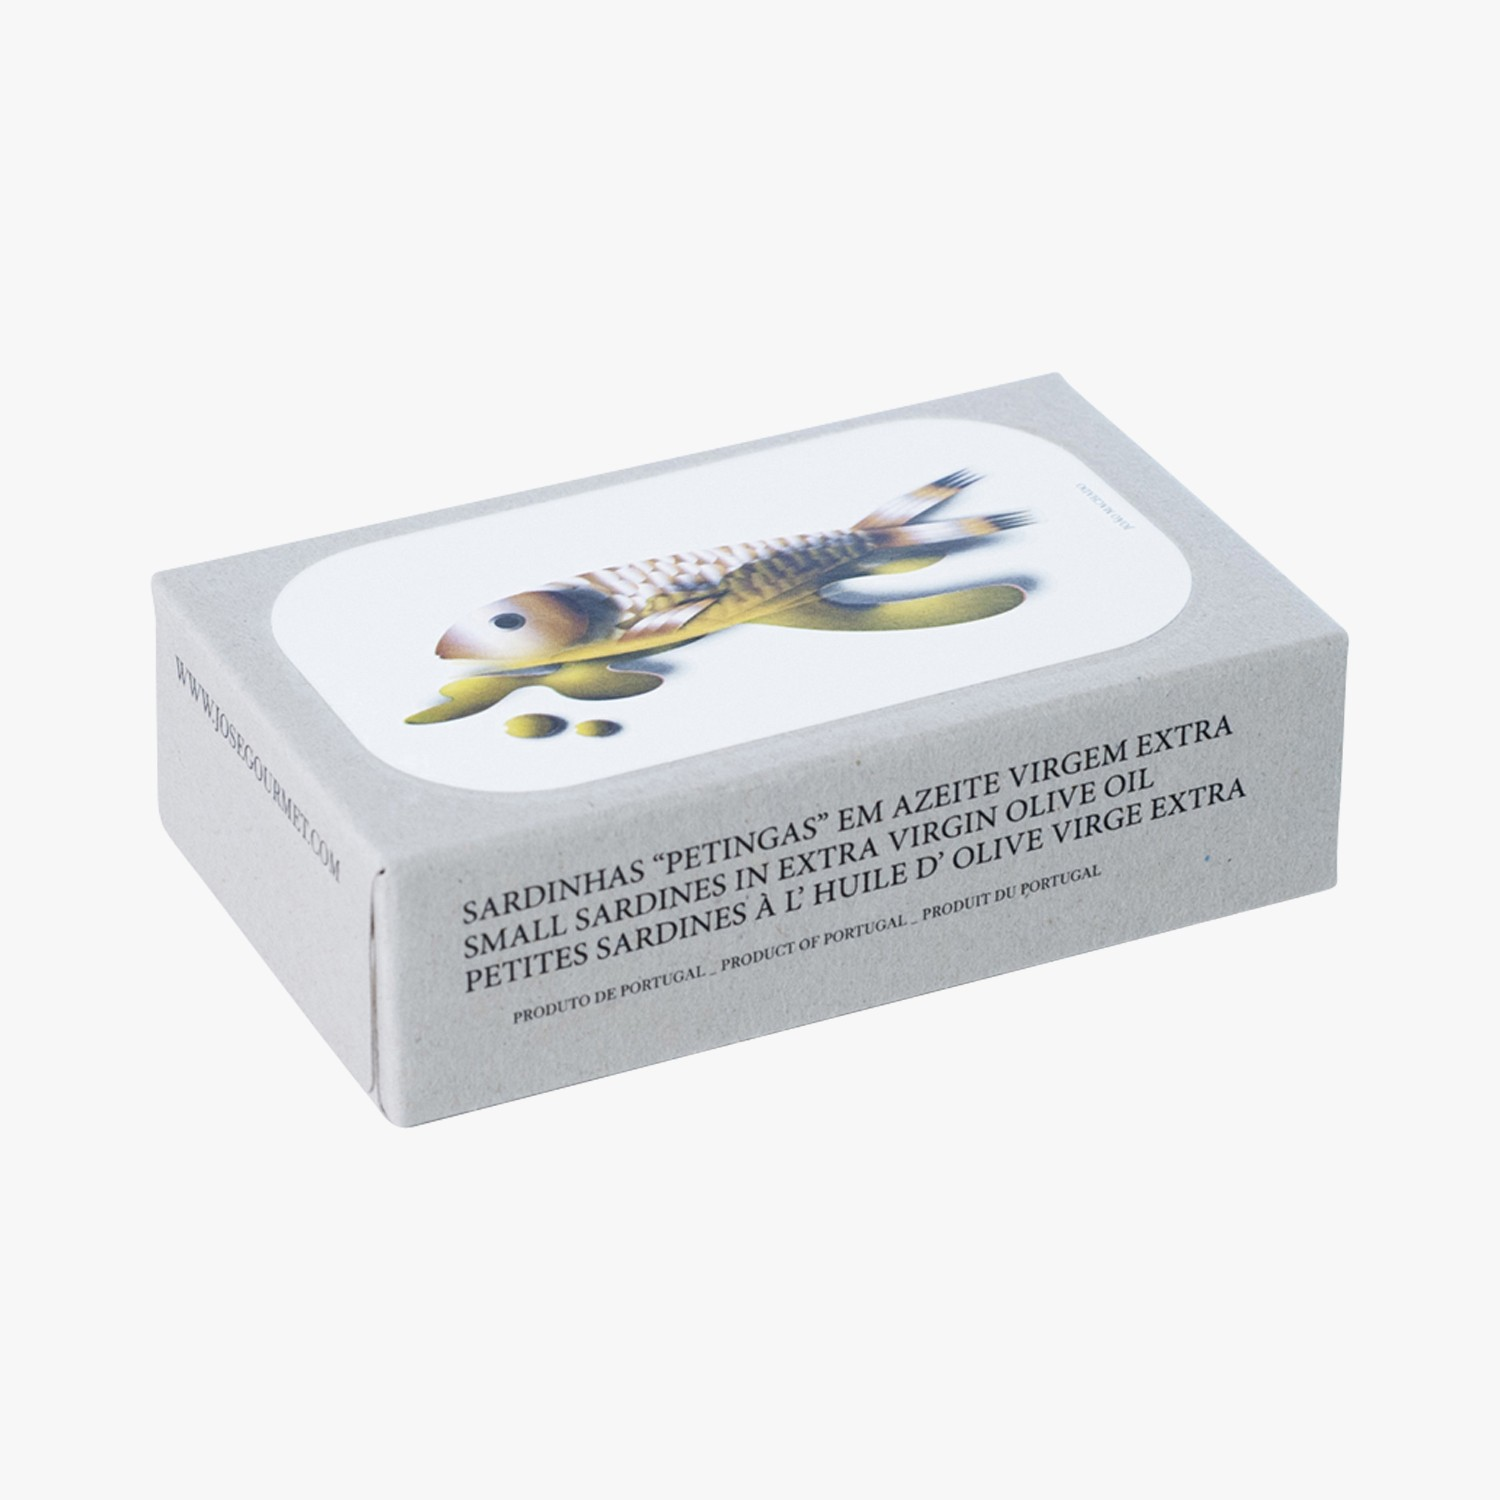 Small sardines in extra virgin olive oil, , hi-res